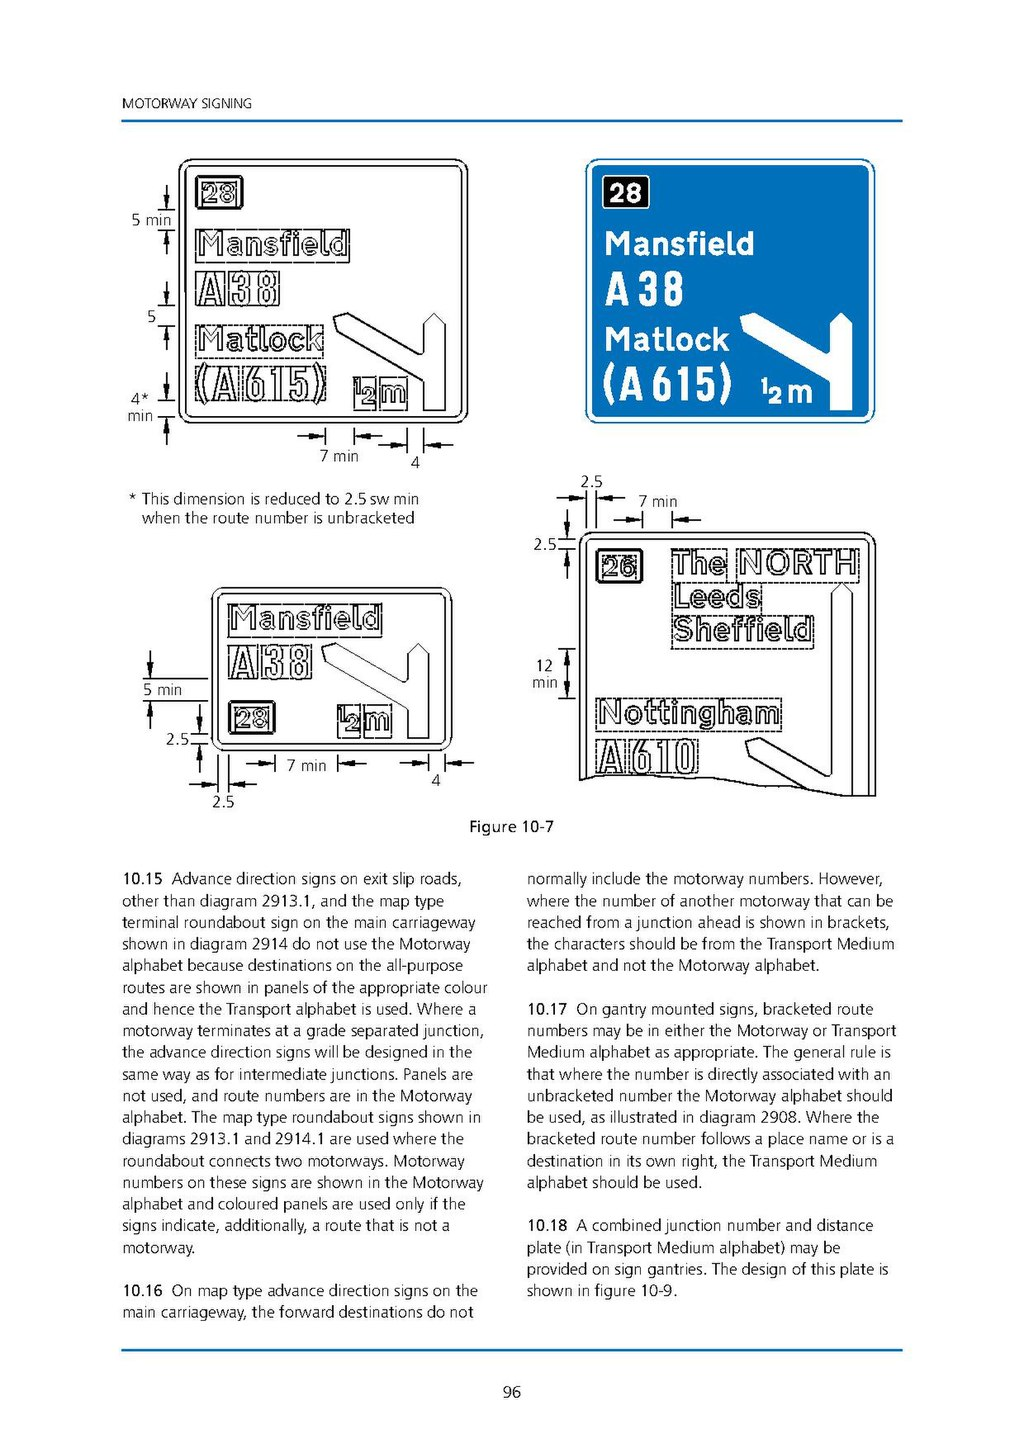 Pageuk traffic signs manual chapter 7 the design of traffic pageuk traffic signs manual chapter 7 the design of traffic signs 2013pdf97 wikisource the free online library ccuart Images